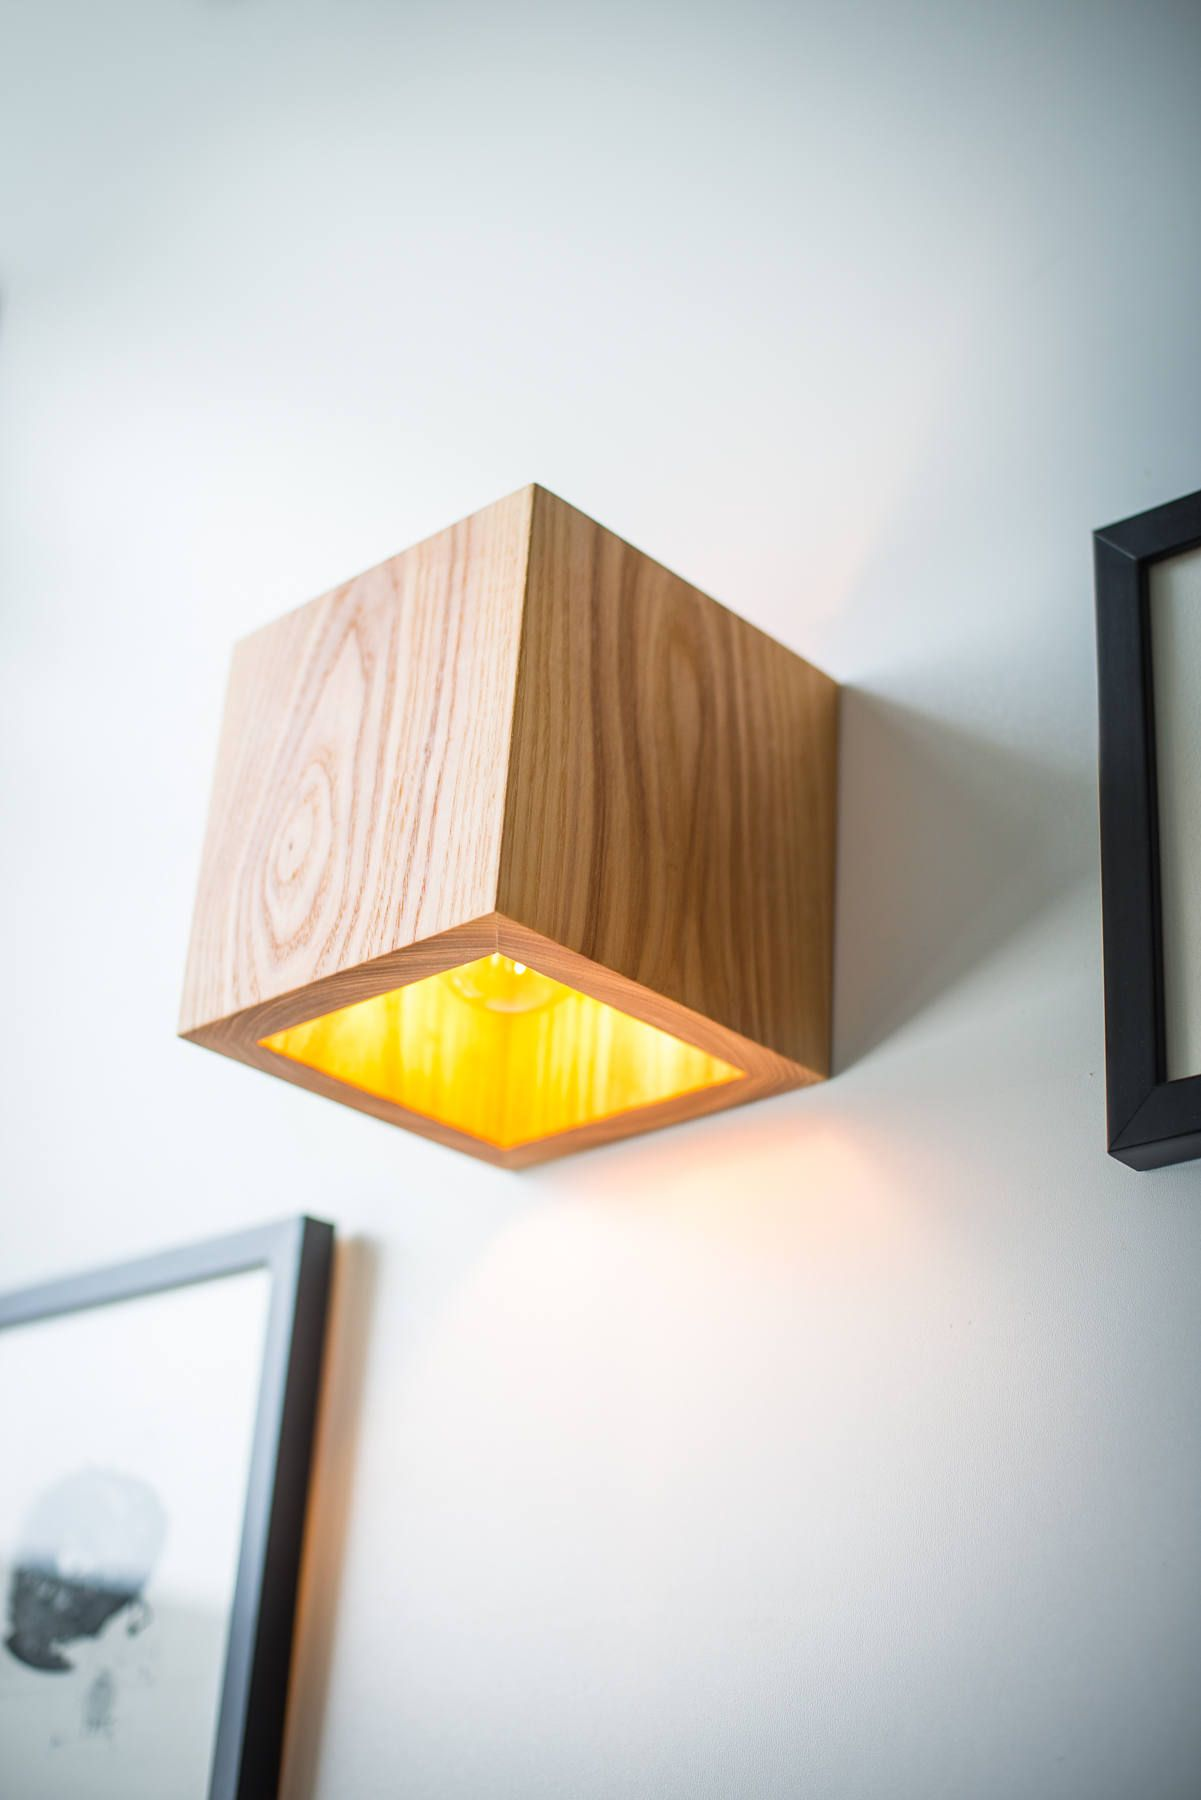 Wall sconce Q445 wooden lamp. above bed decor industrial